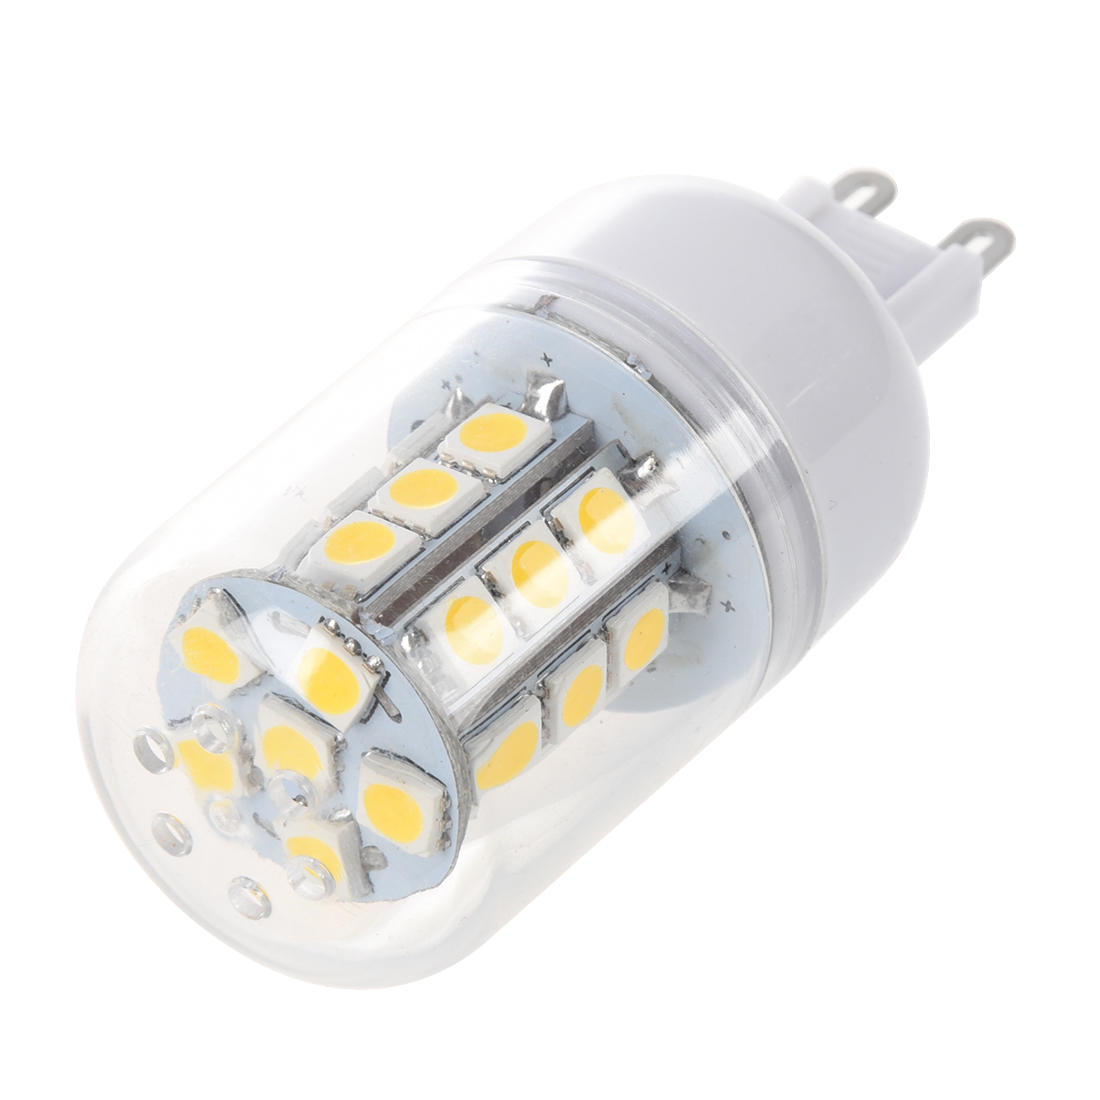 Led G9 5w Details About G9 5w 27 Led 5050 Smd Corn Bulb Lamp Spot Light Spotlight Warm White Ac 22 I7l8